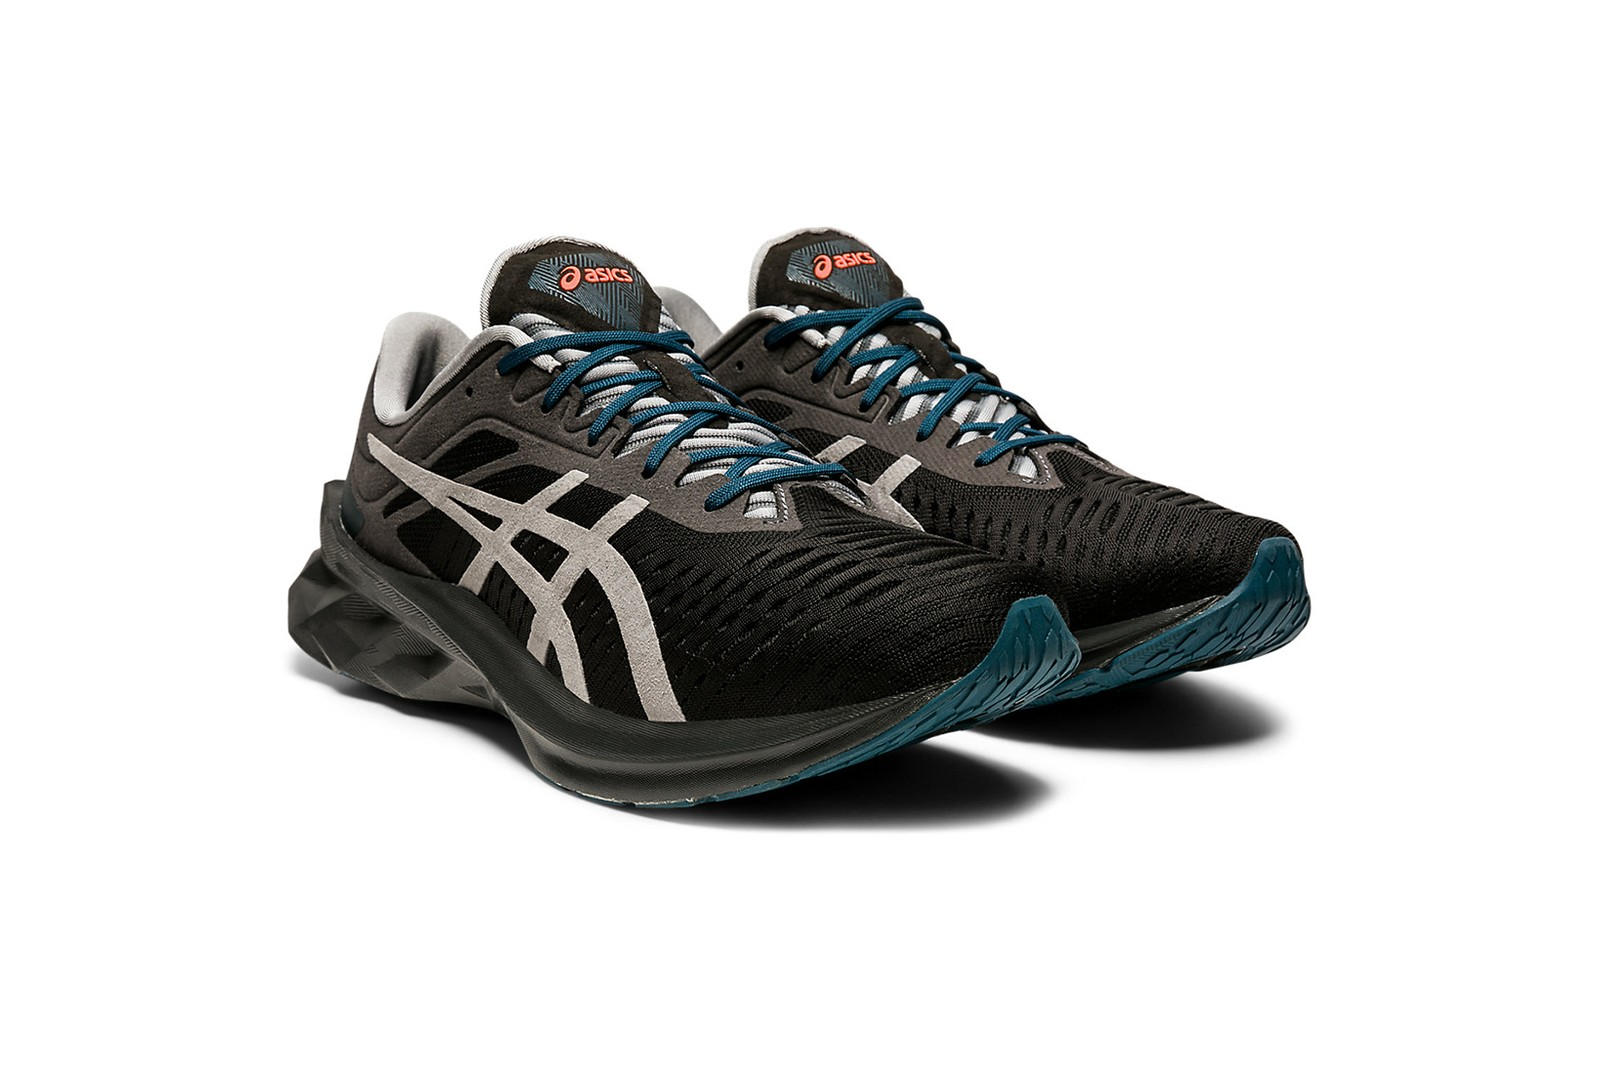 The ASICS NOVABLAST Sneaker Enhances Dynamic Movement Mr Shirley Black Cyan